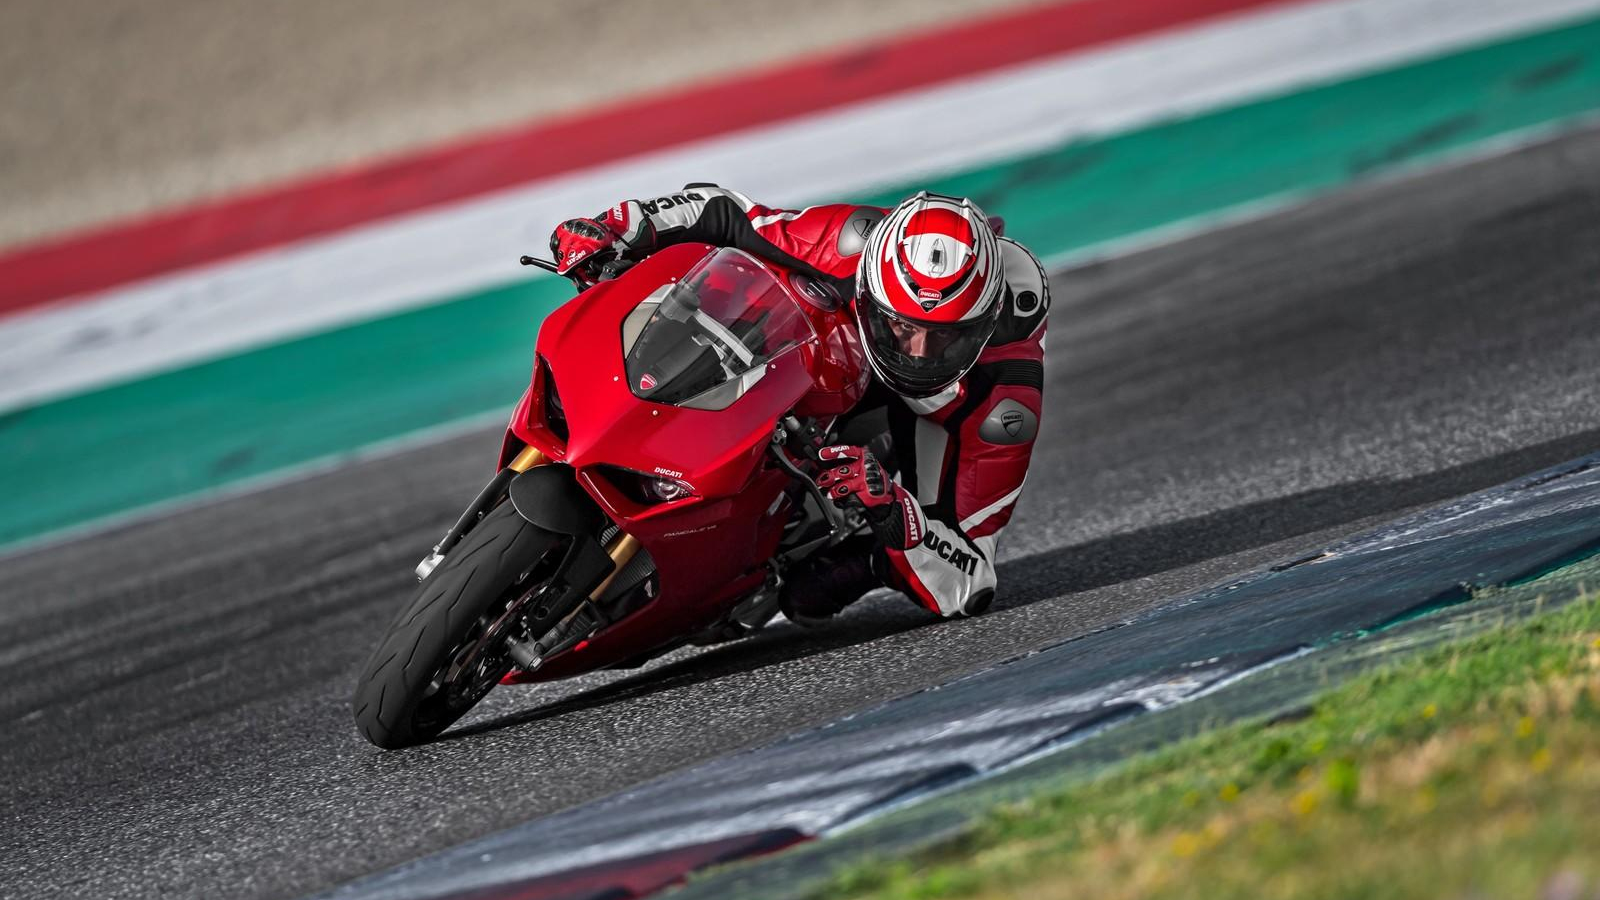 2018 Ducati Panigale V4 | Top Speed